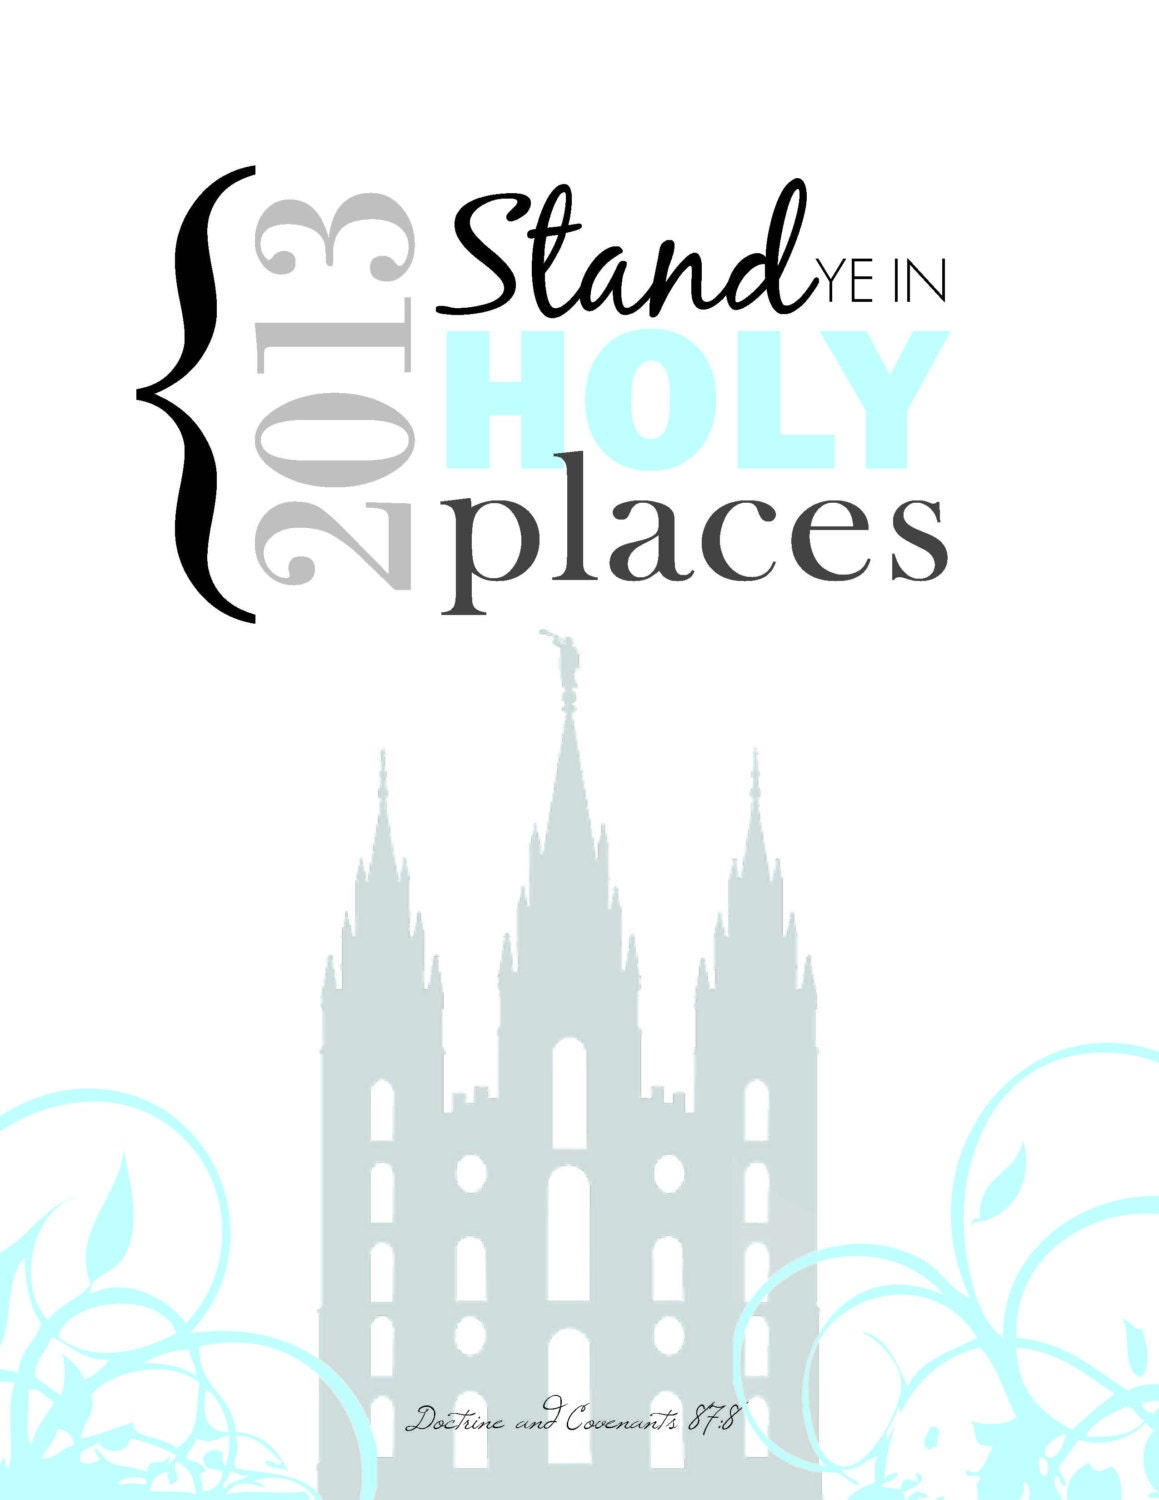 ... Ye In Holy Places LDS 2013 Youth Theme PDF for frame or binder cover